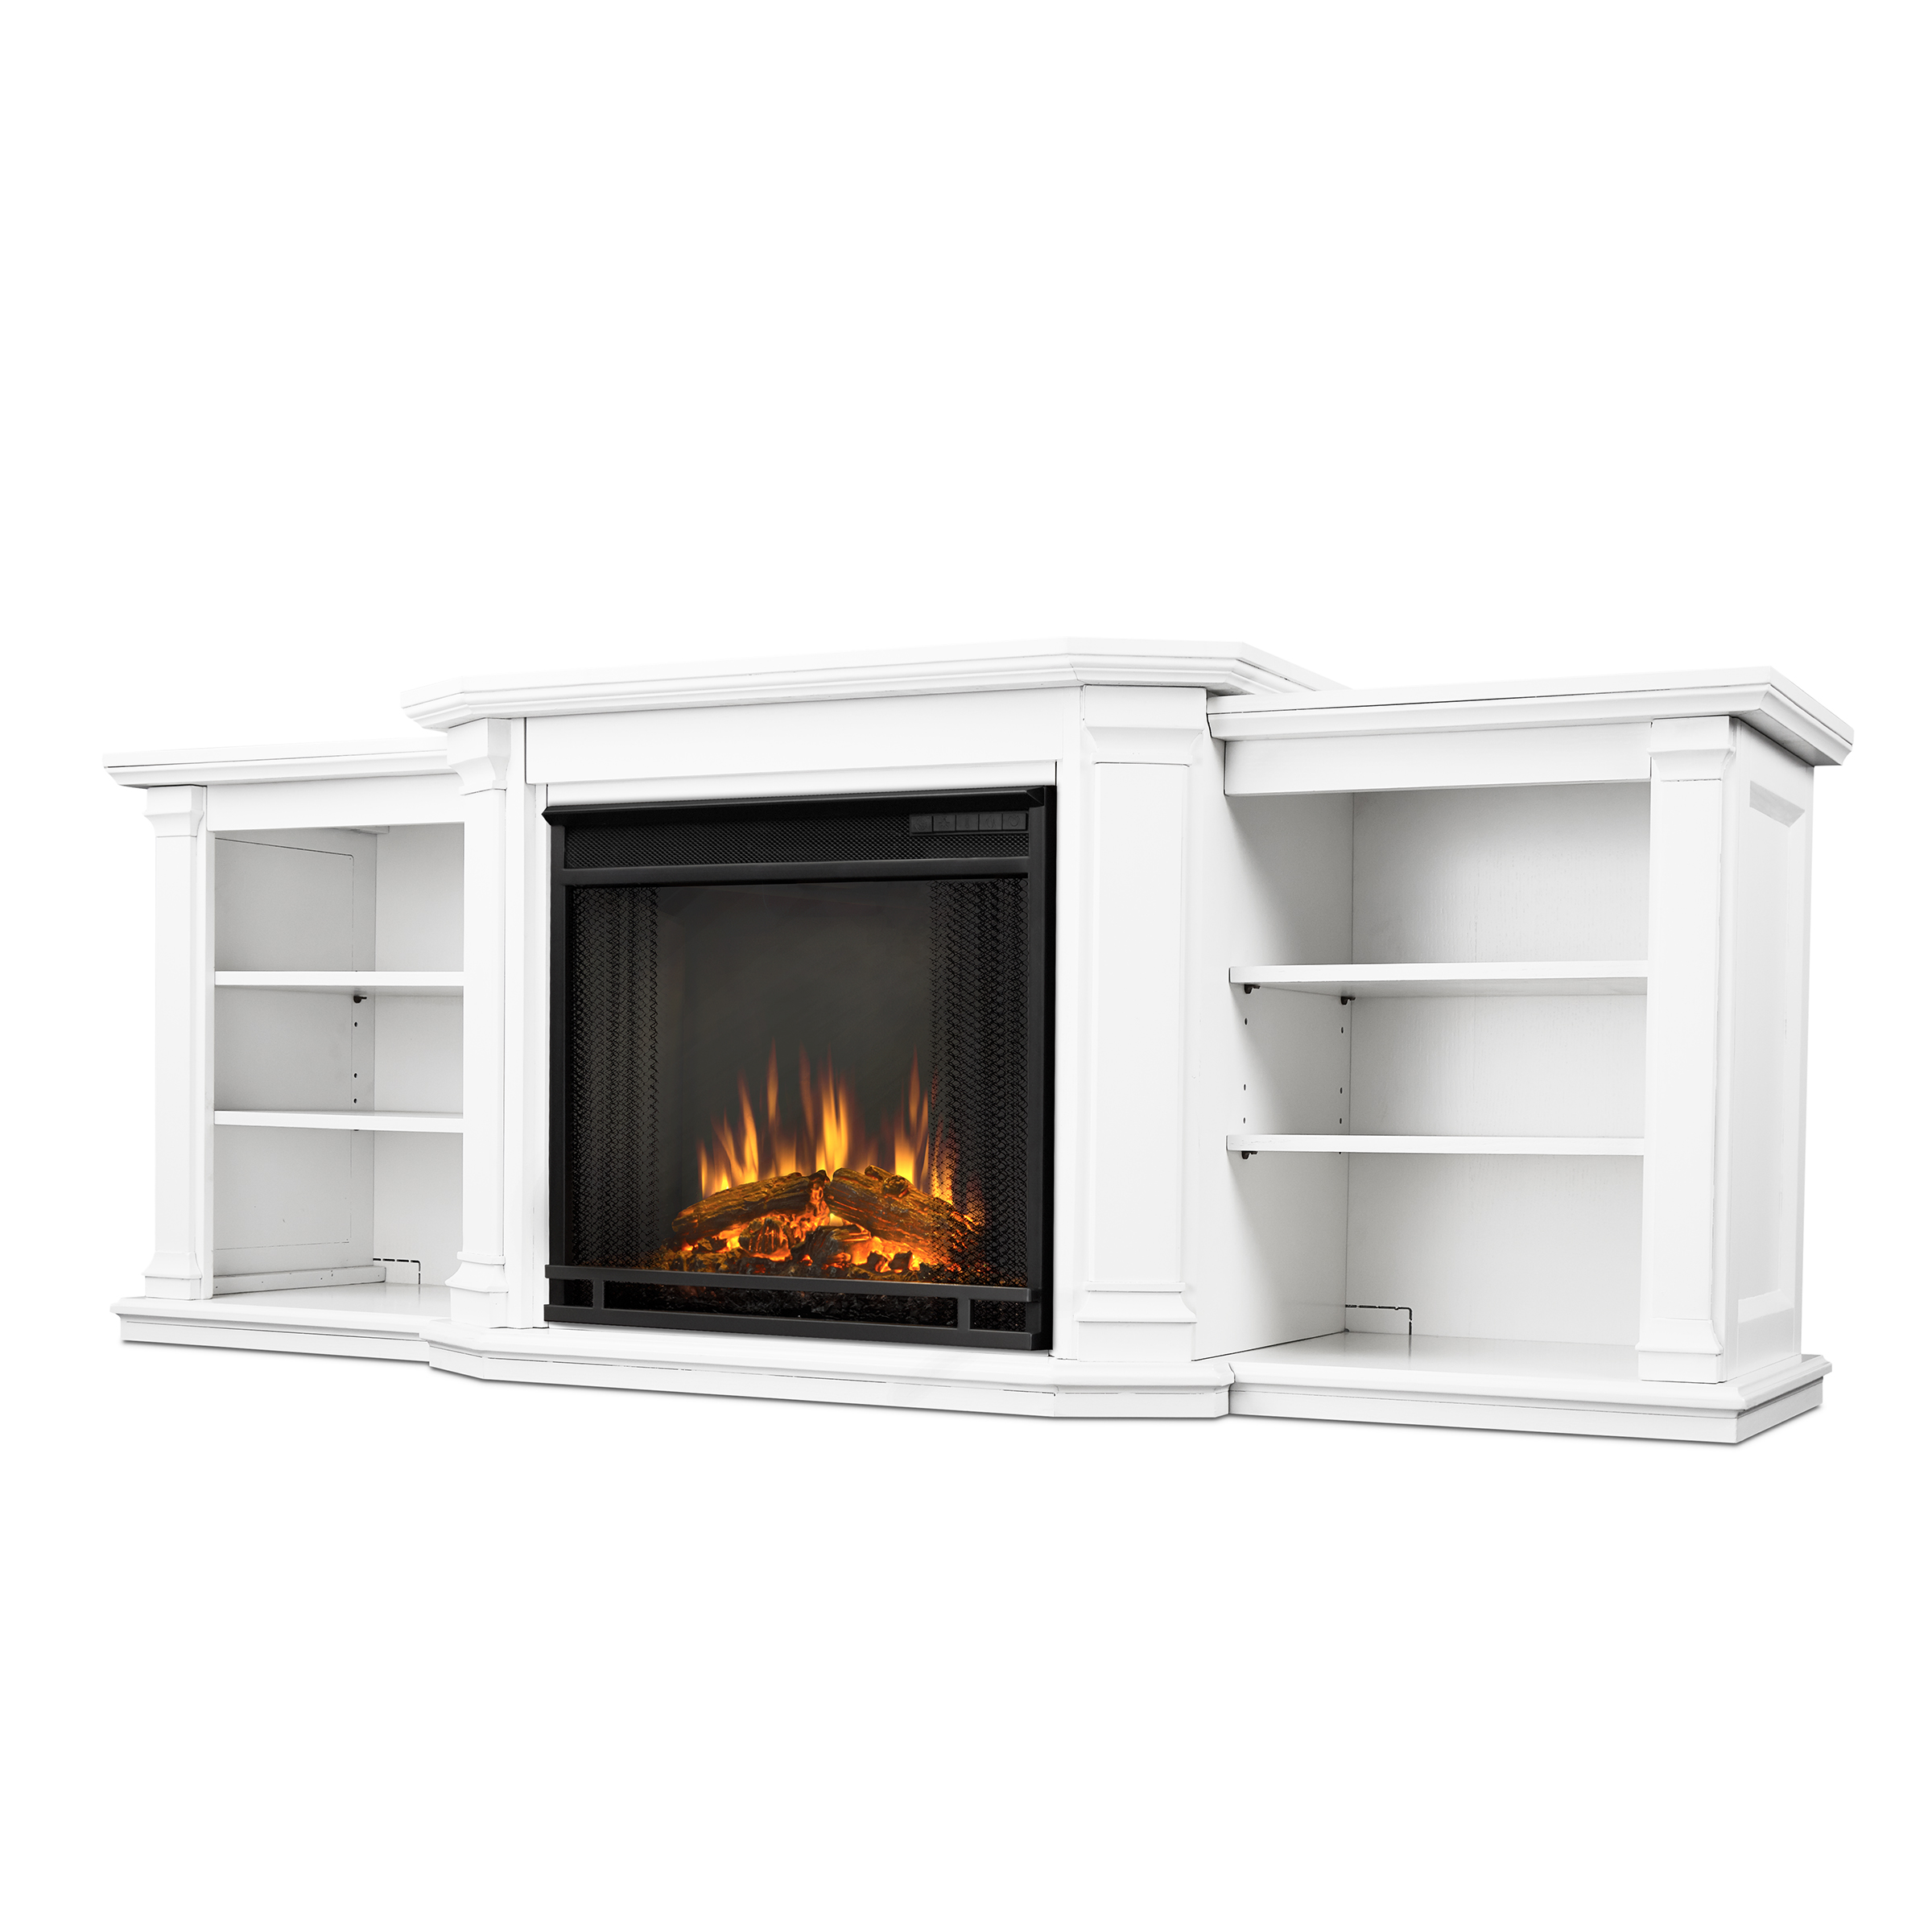 Valmont Entertainment Center Electric Fireplace In White By Real